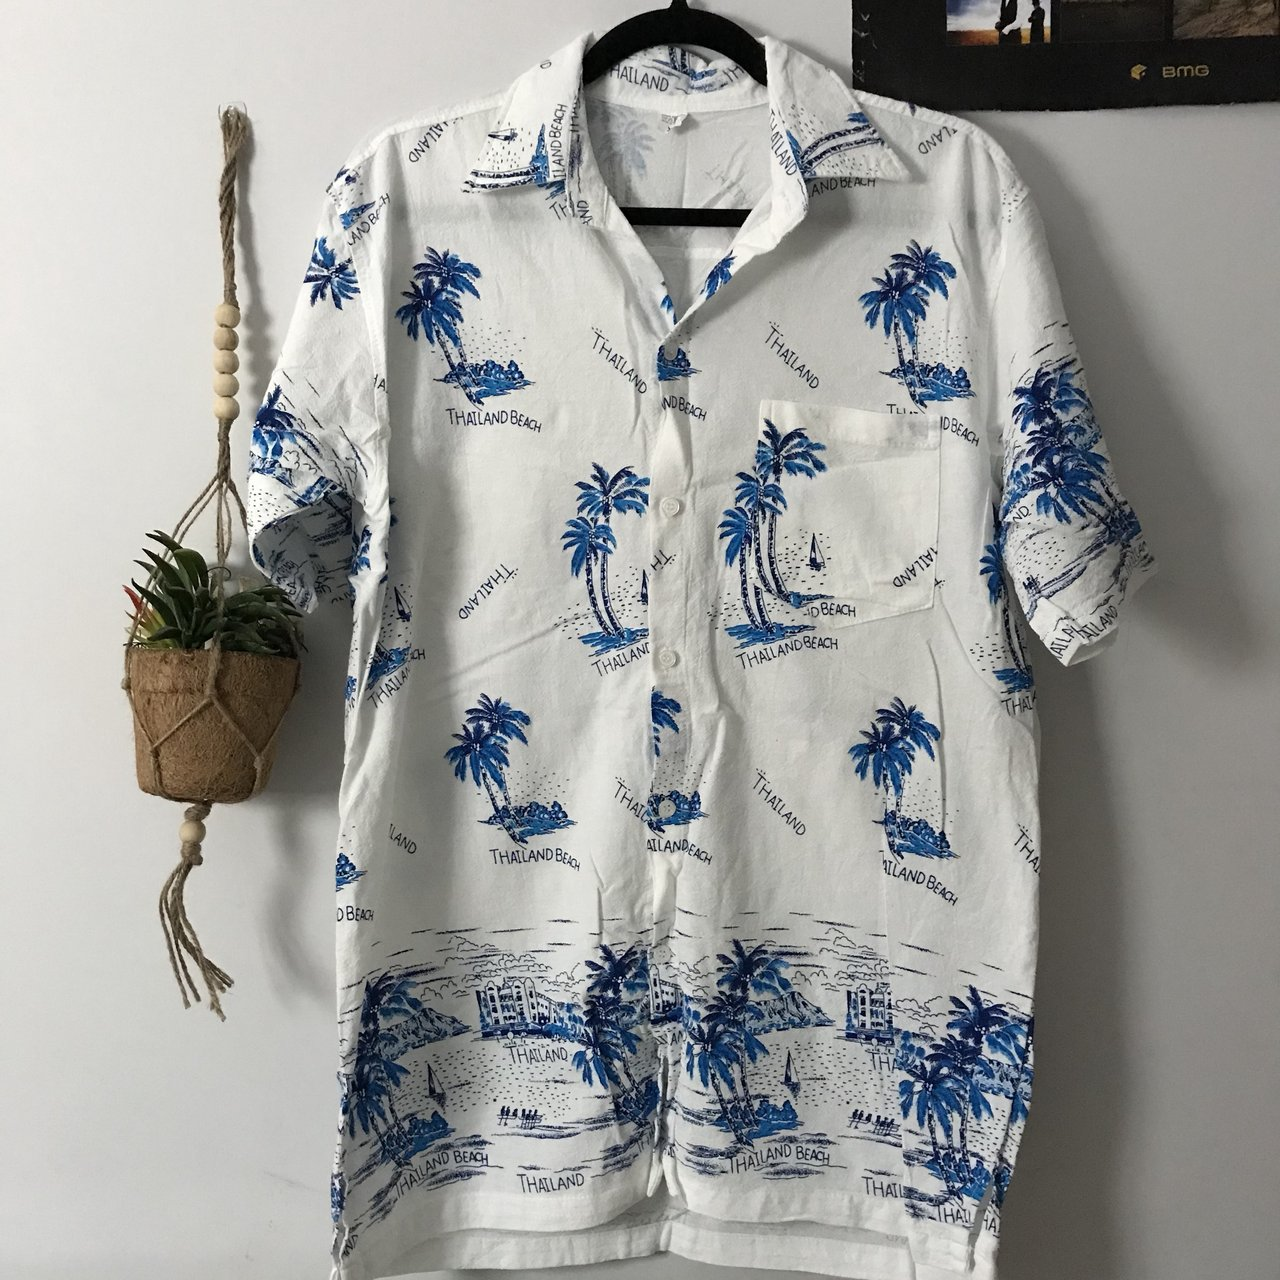 2a25cf35 Available Bulk Hawaiian Aloha Shirts - Wave Shoppe